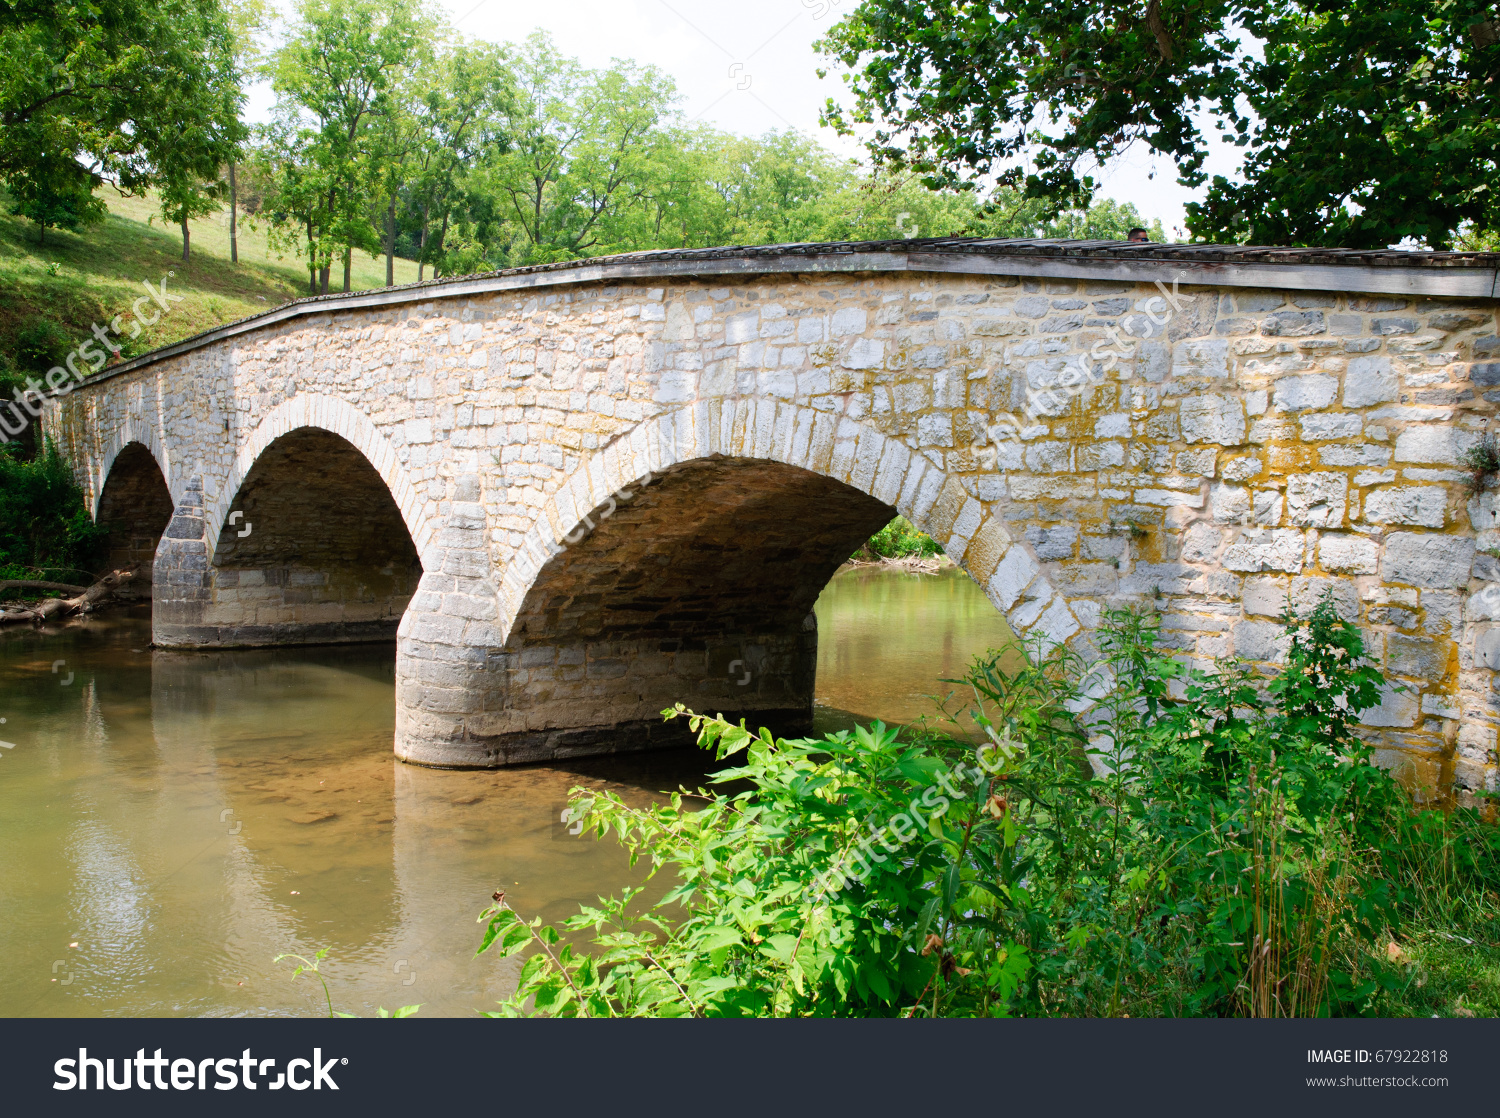 Burnside Bridge Over Antietam Creek Stock Photo 67922818.